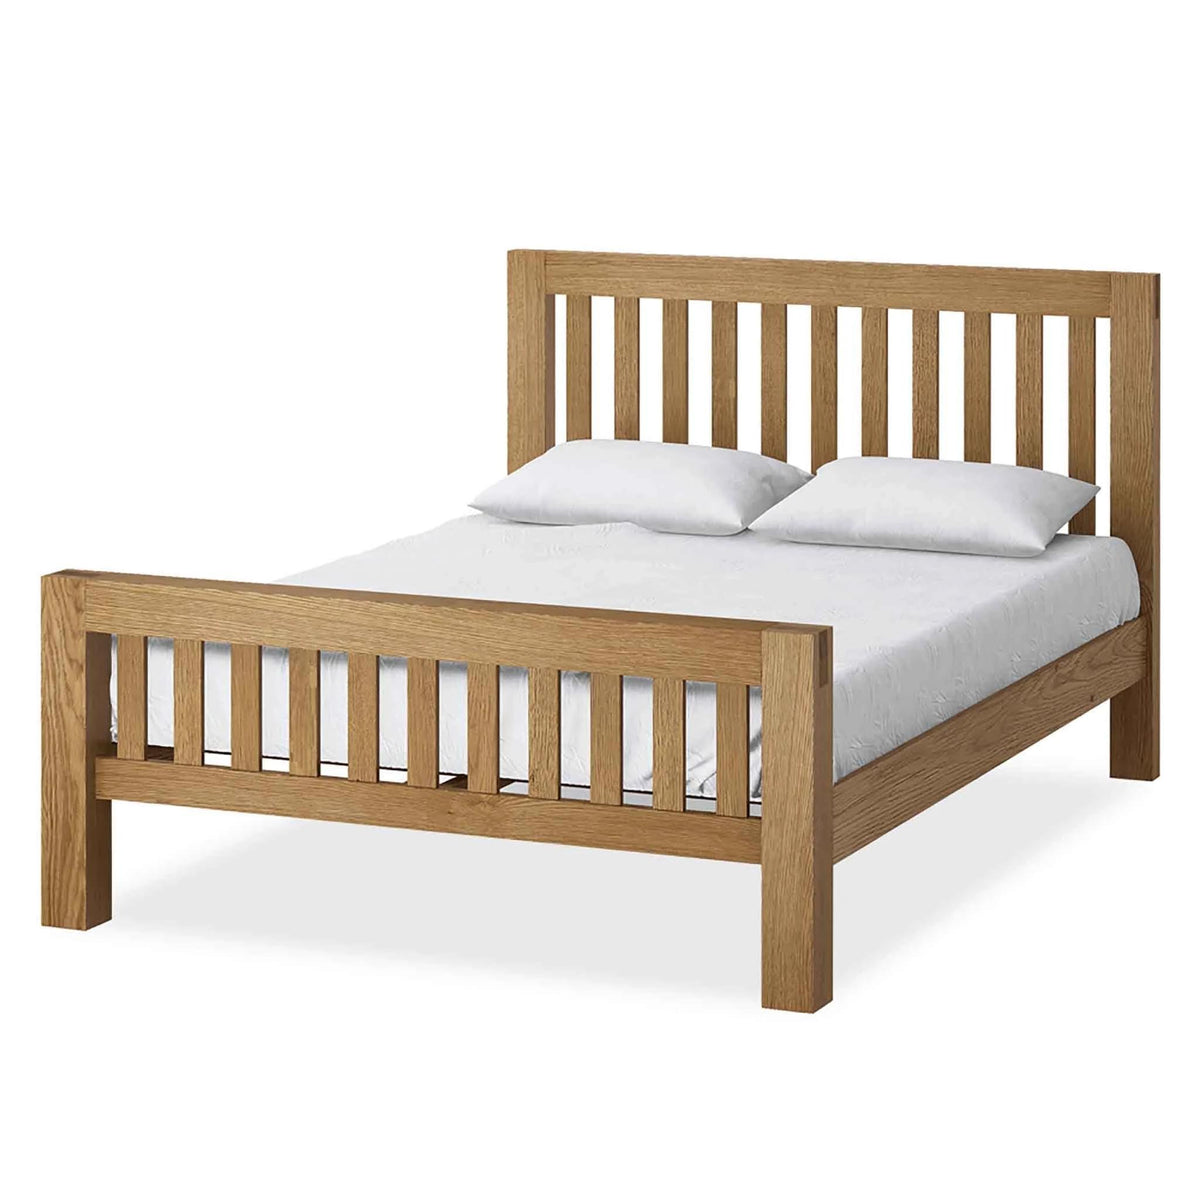 The Abbey Grande Wooden Oak Bed Frame Double or King Size from Roseland Furniture